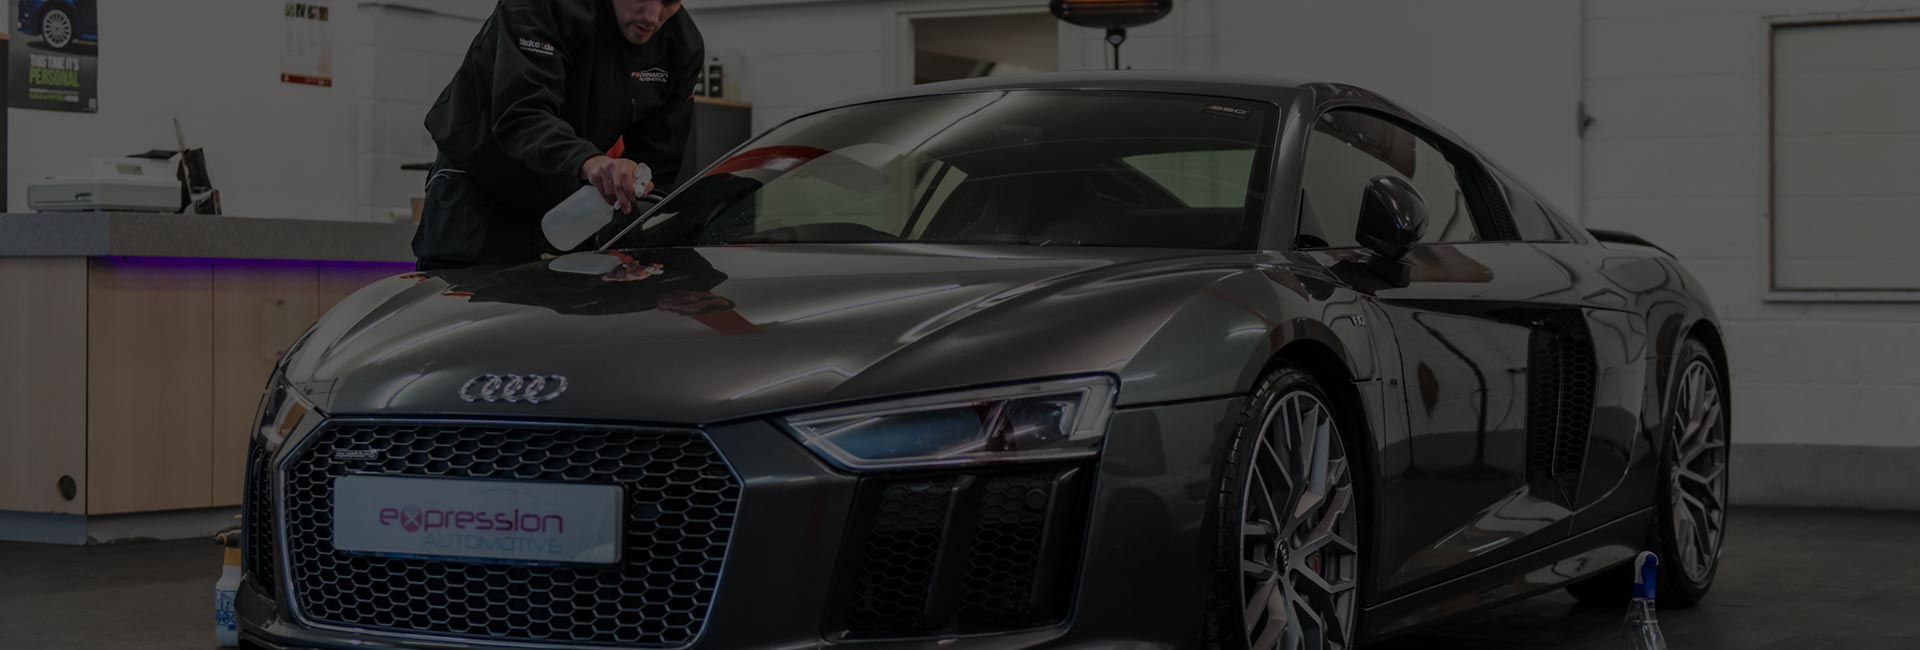 Audi R8 Paint Protection Film Fitting by Expression Automotive, Bradford, Leeds, Baildon